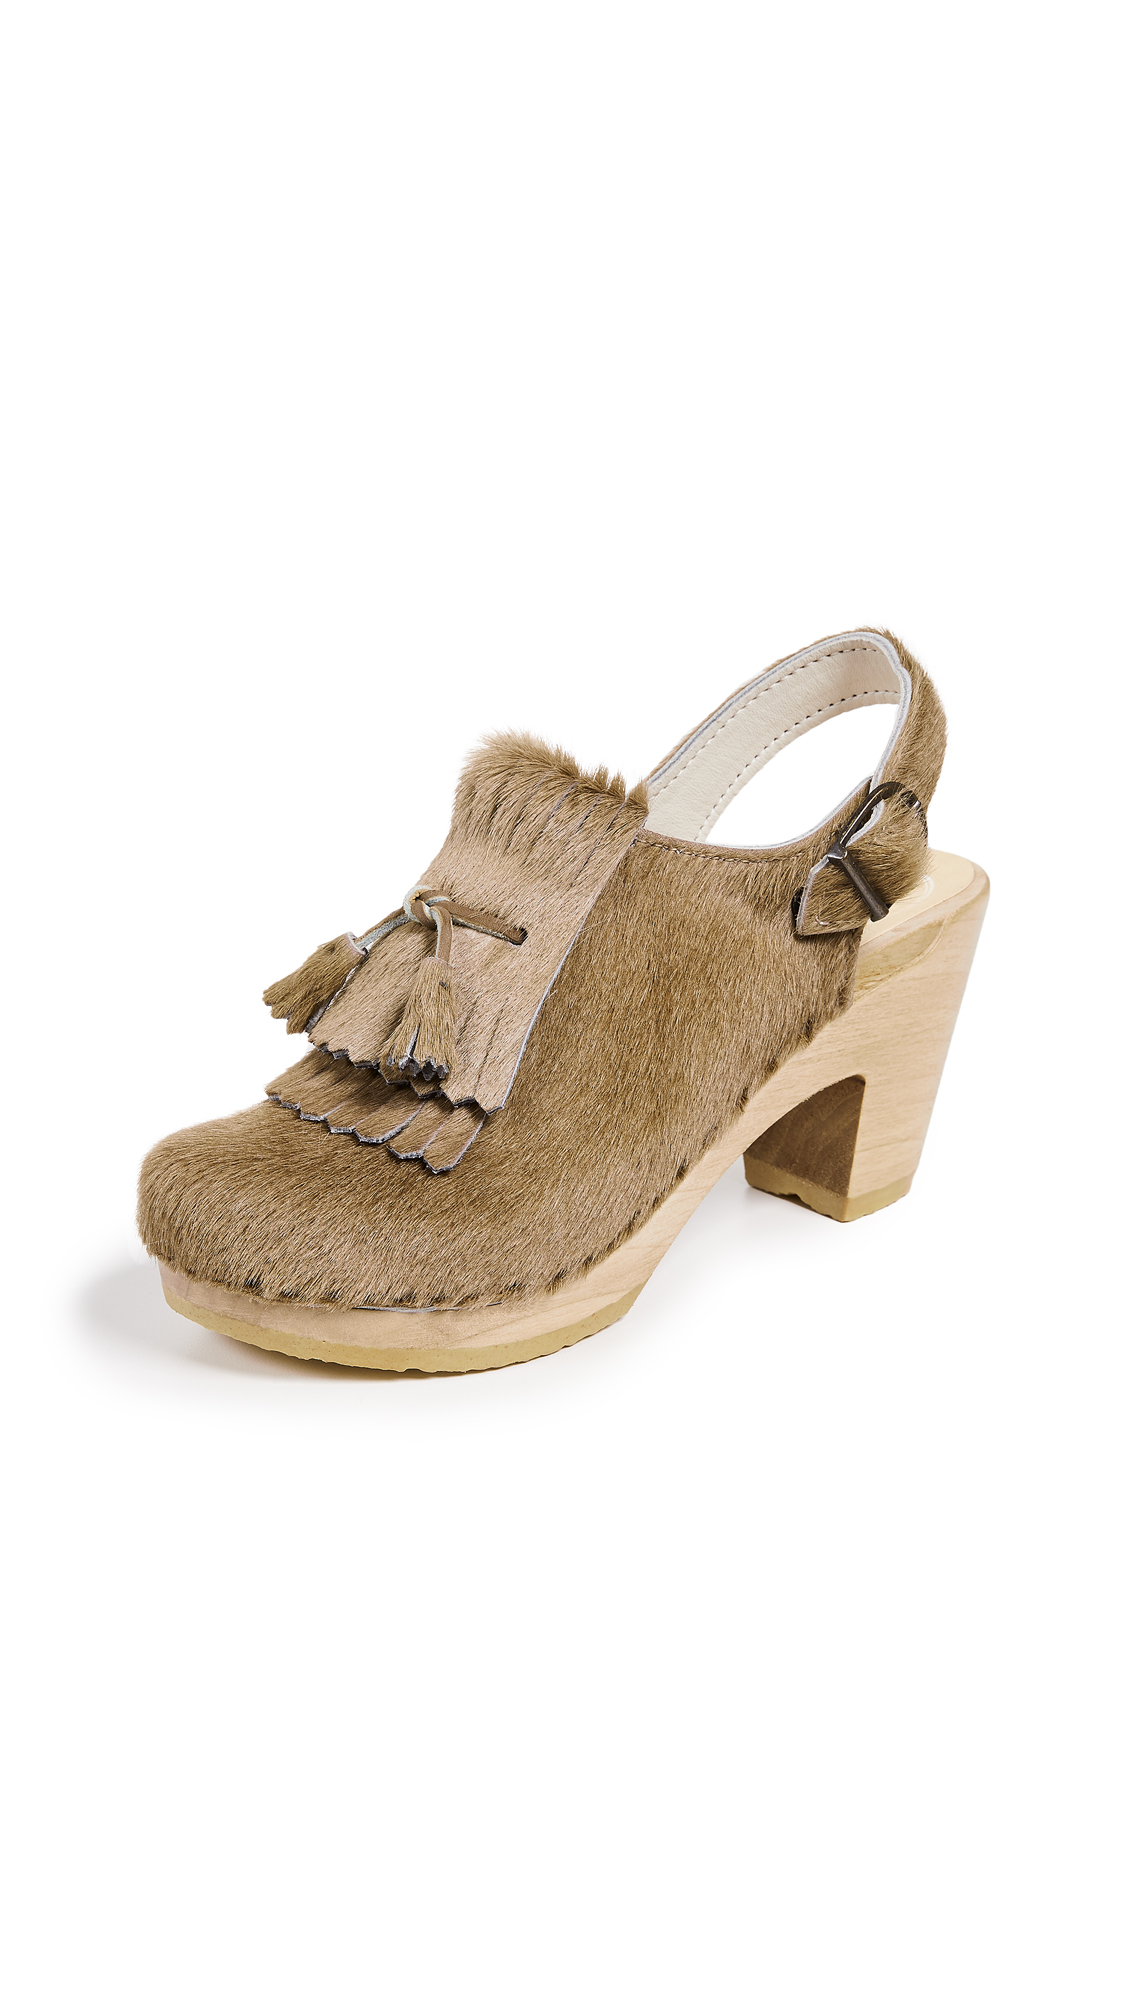 NO. 6 Keats Kiltie High Heel Clogs in Stone